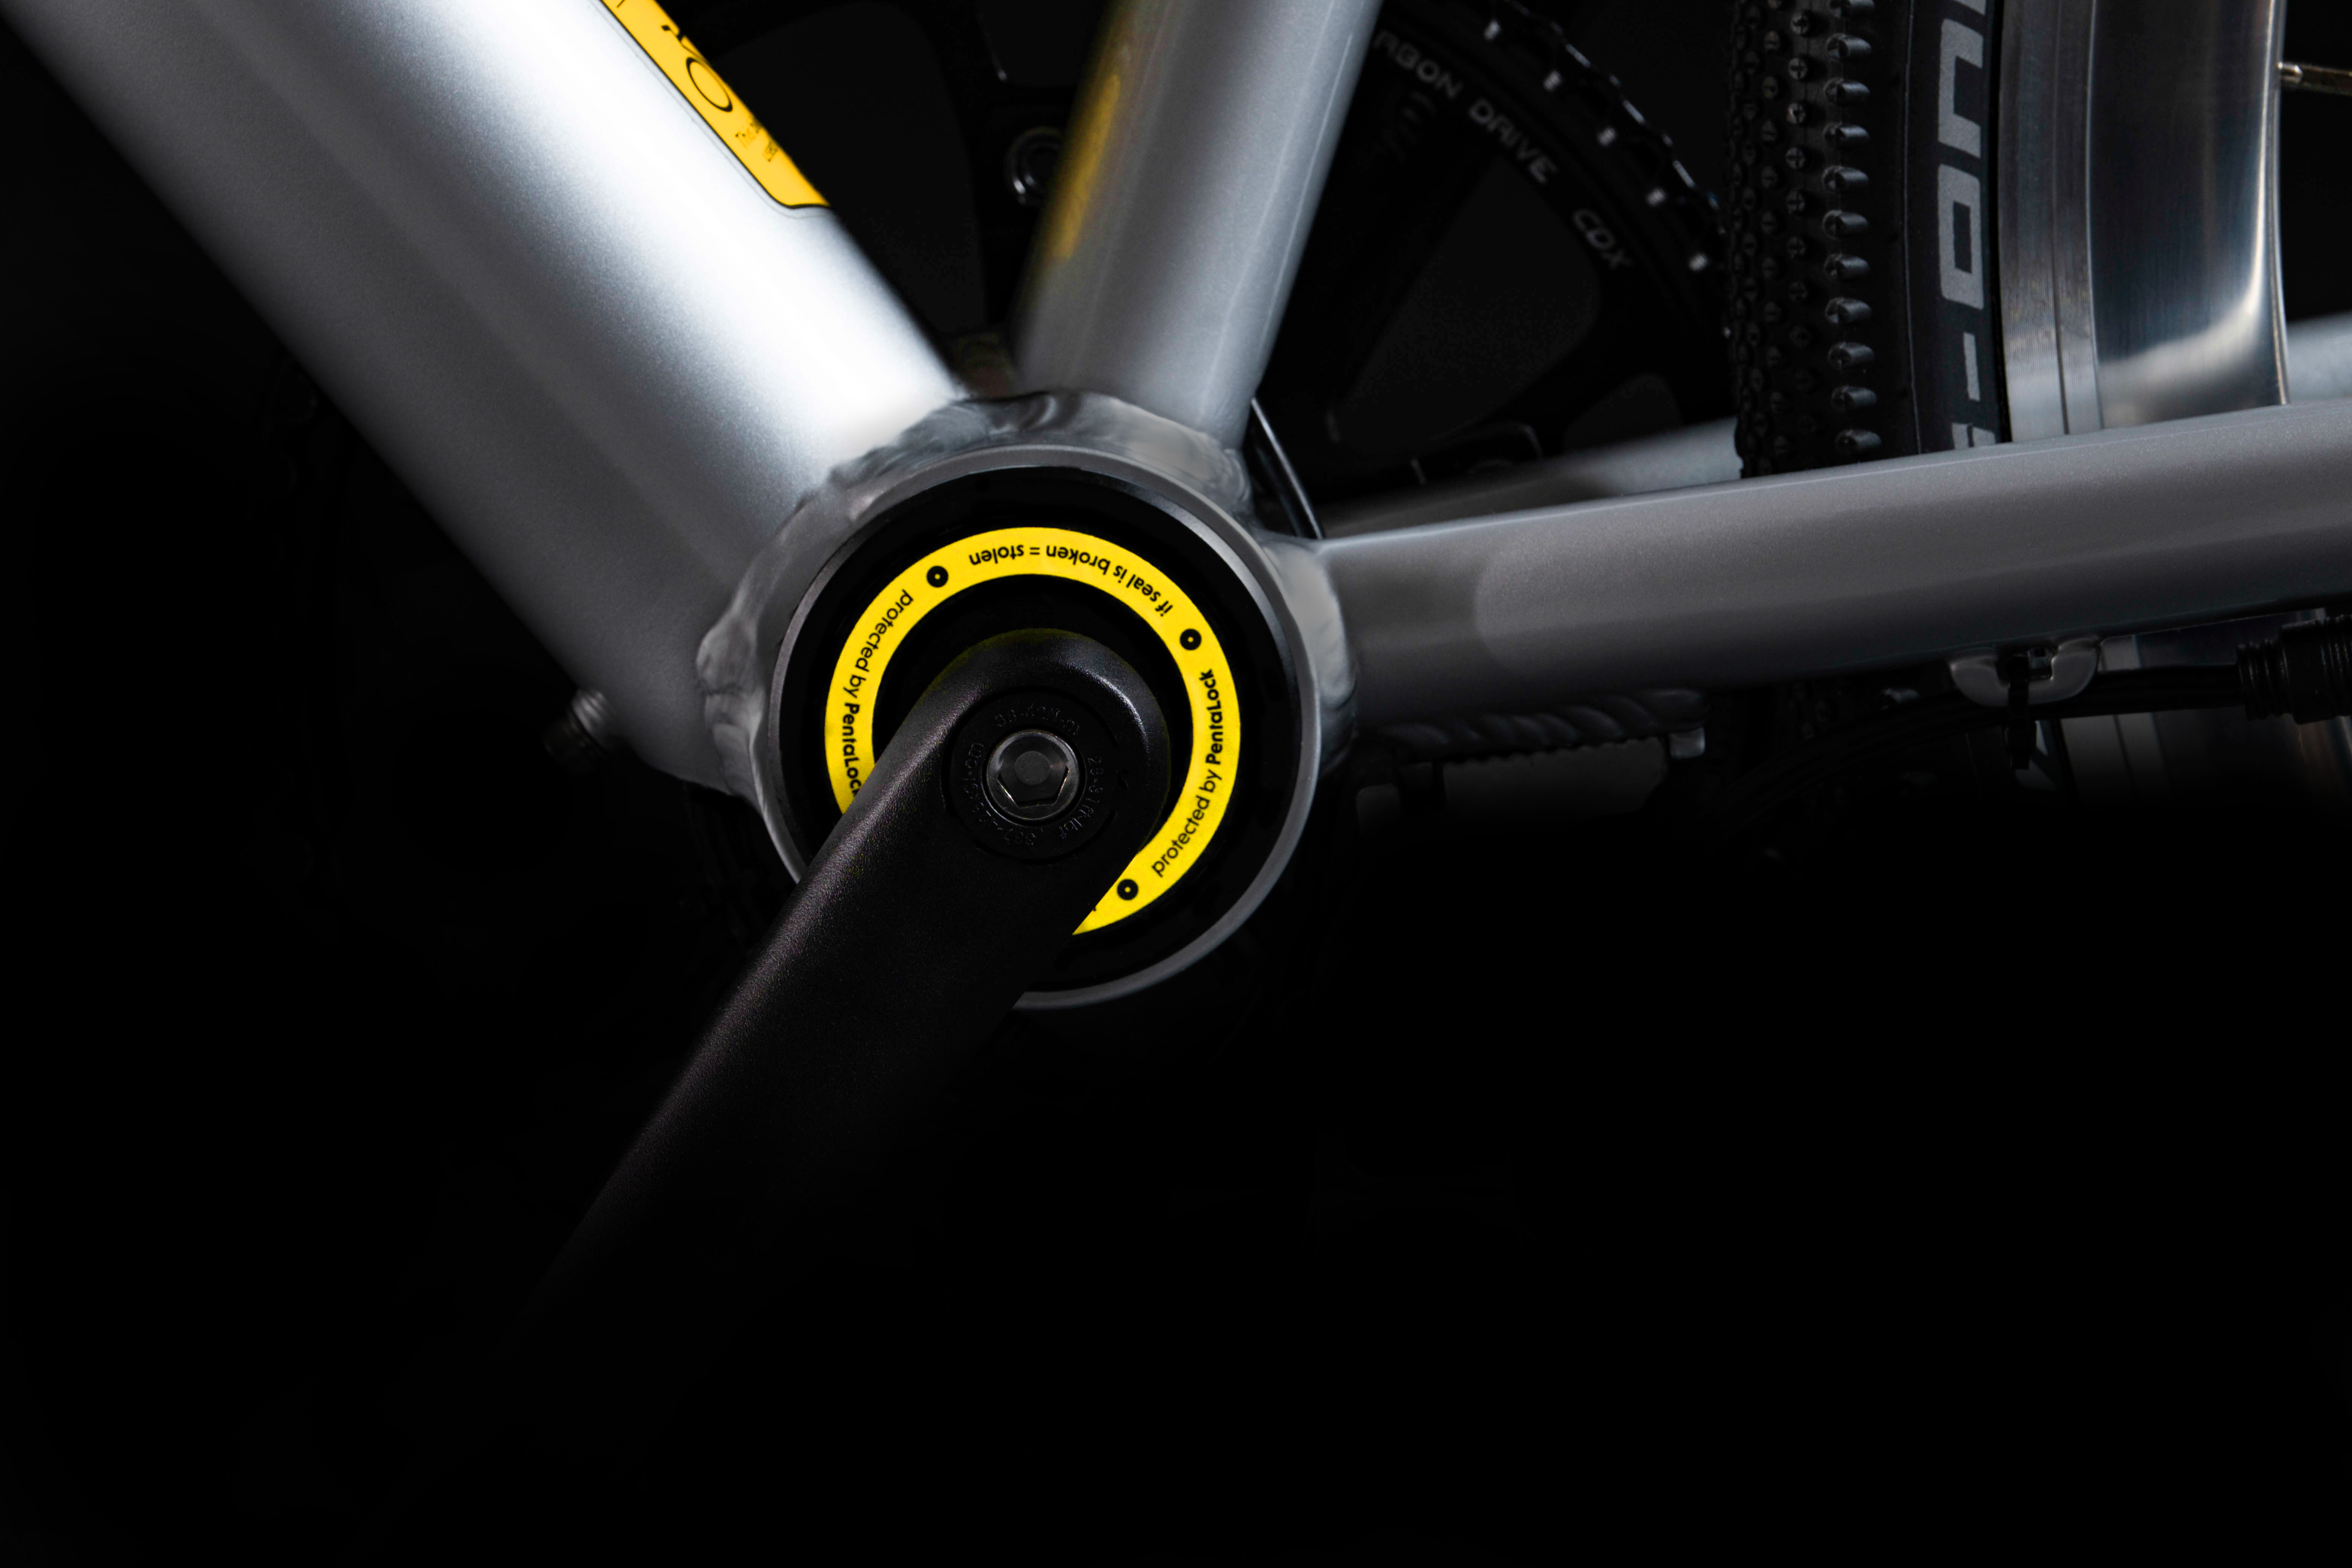 The PentaLock is designed to be built into the bike, as opposed to being retrofitted onto existing bicycles